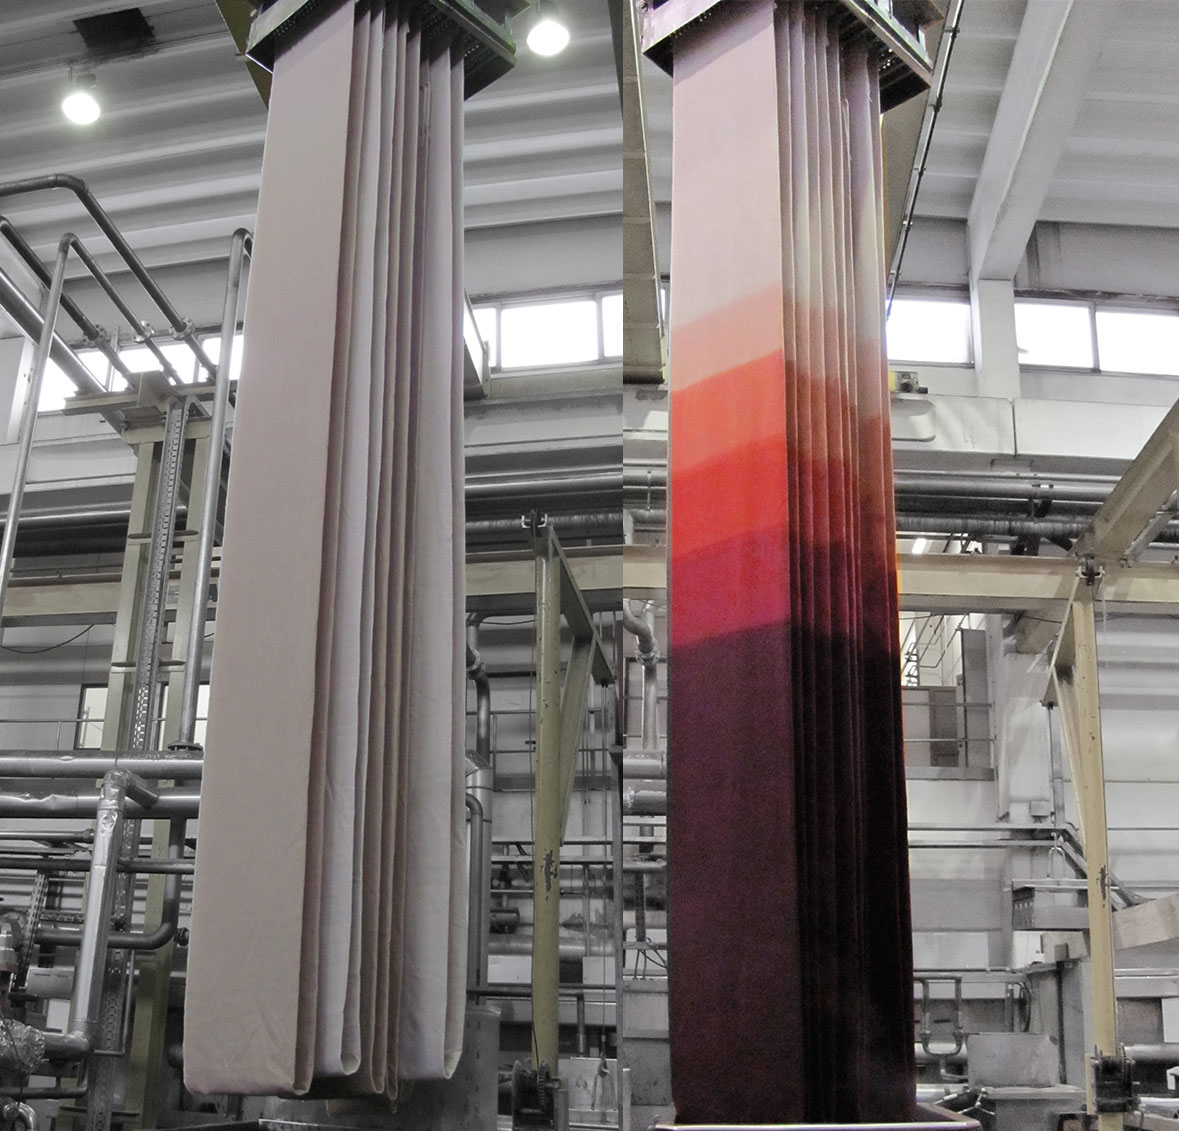 A roll of fabric suspended by crane over a tank of dye